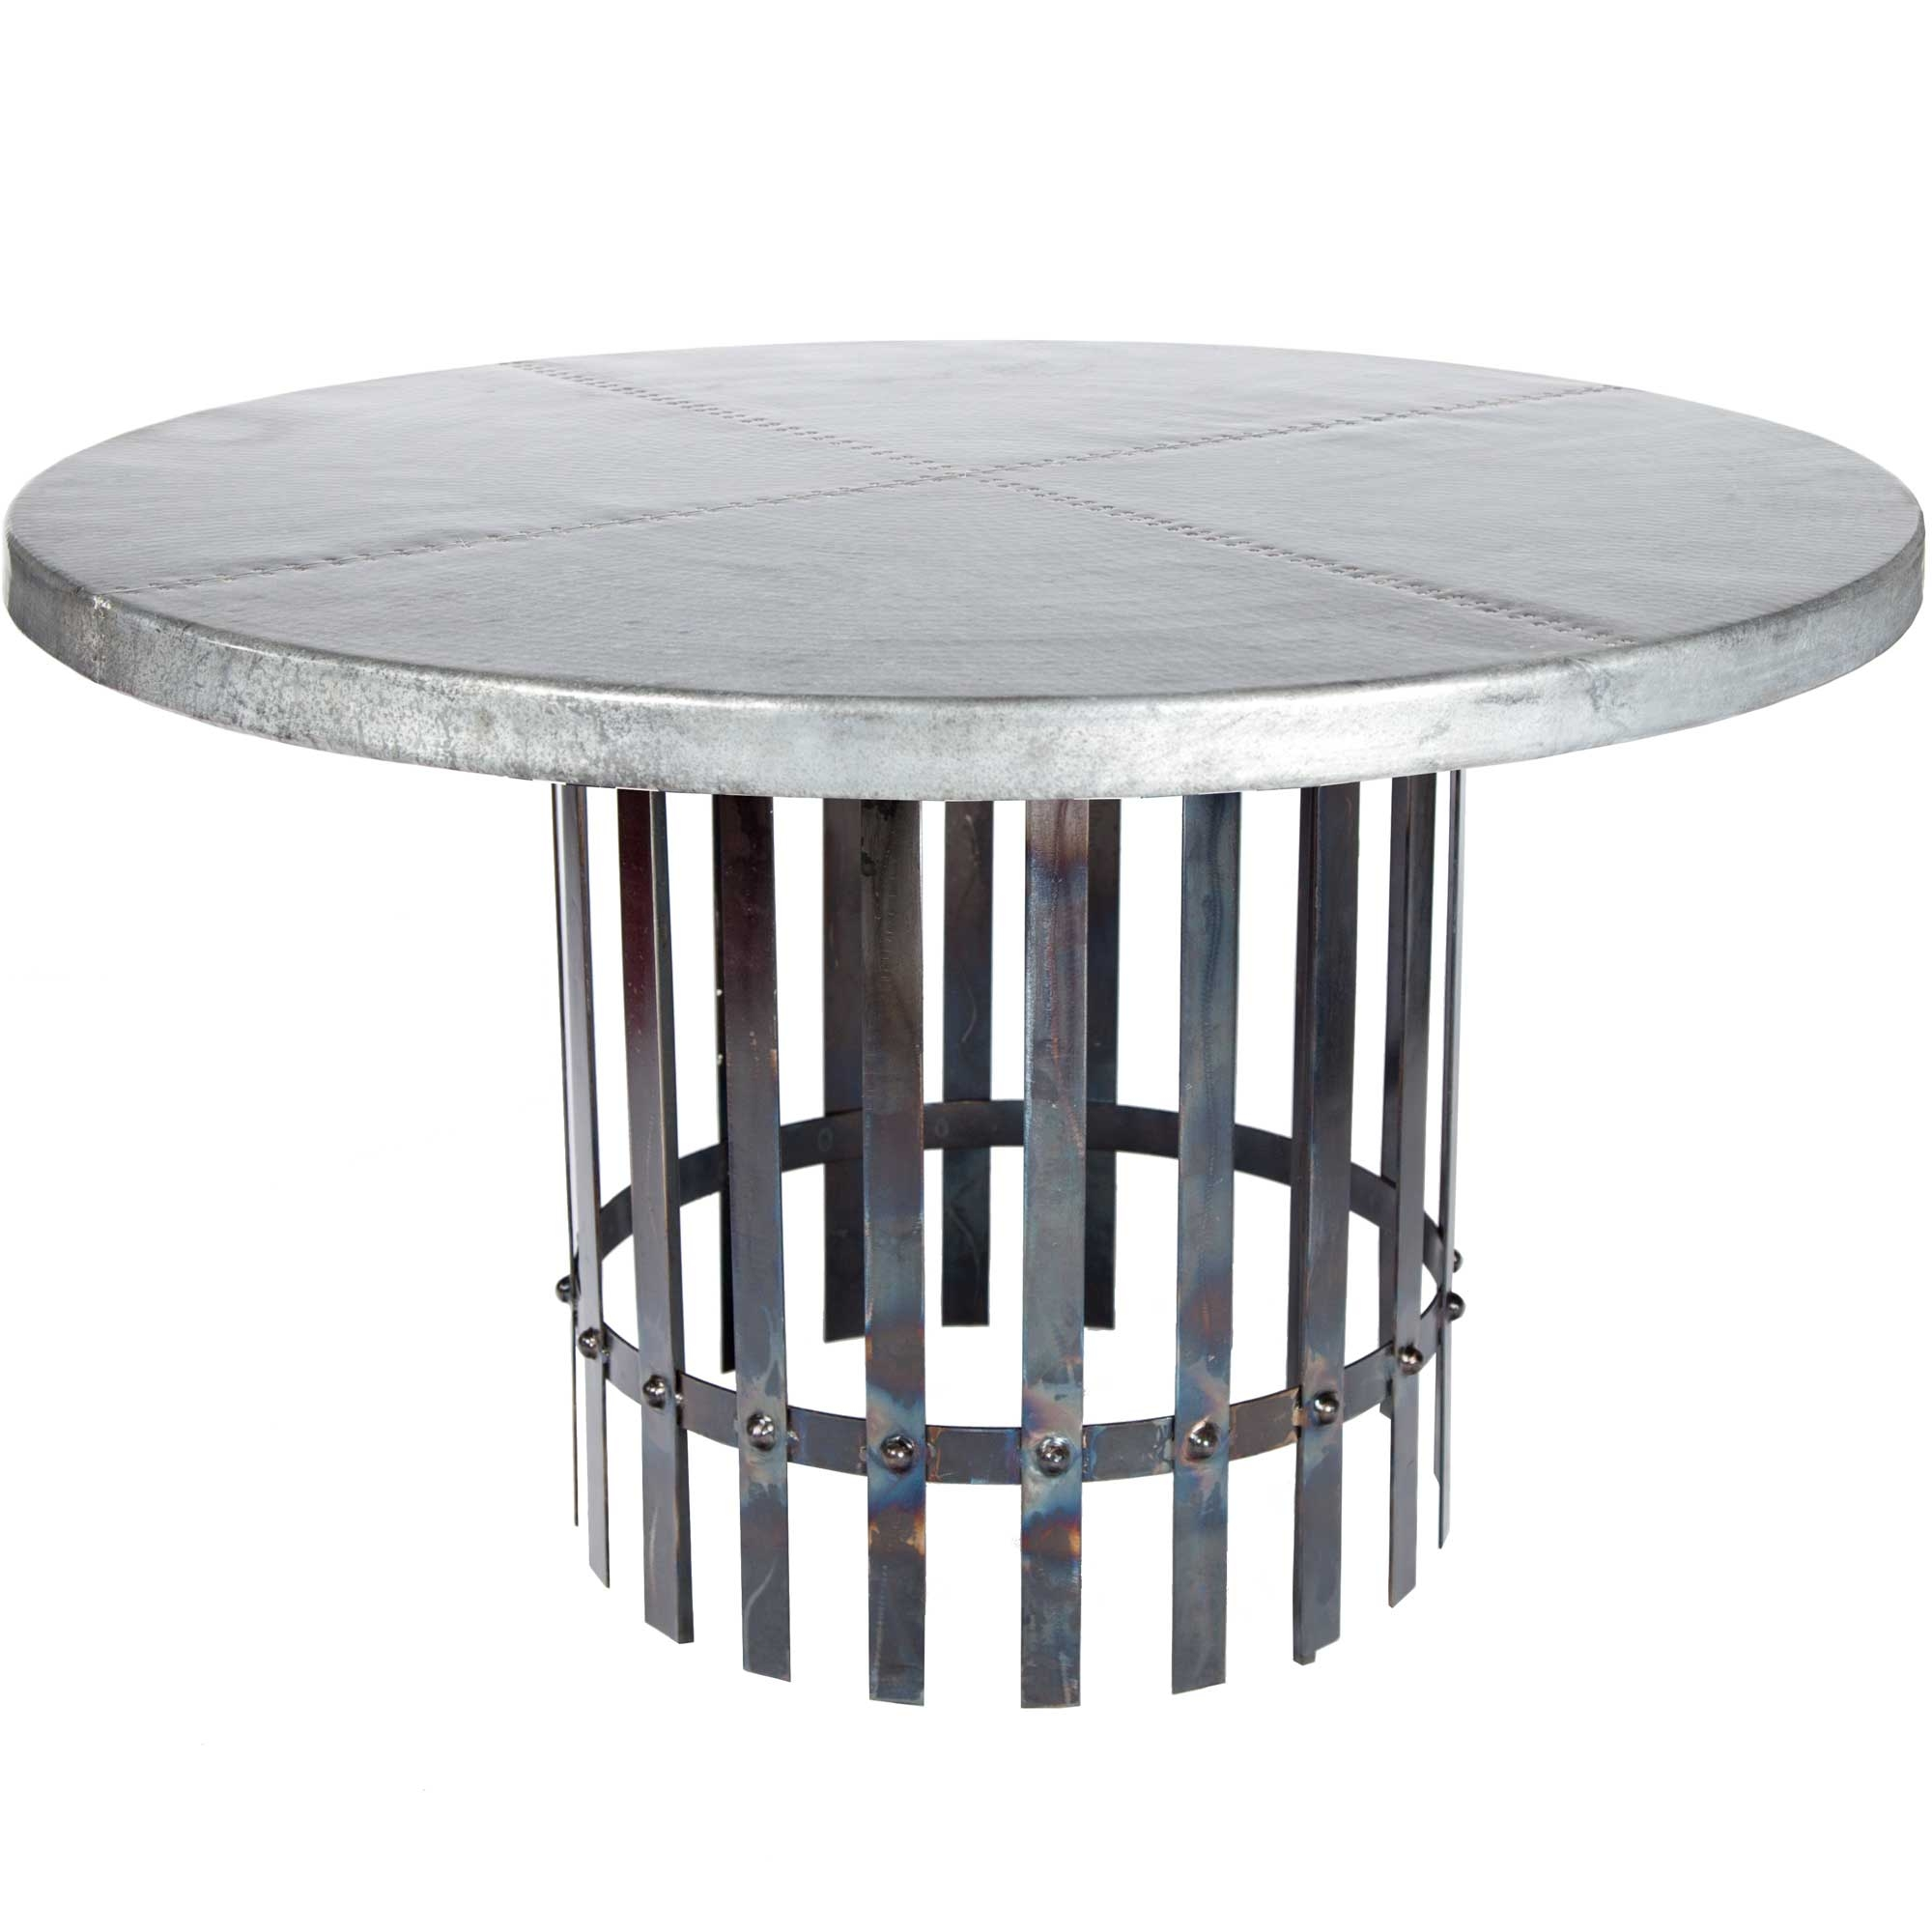 Ashton Iron Dining Table With 48 Round Zinc Copper Top